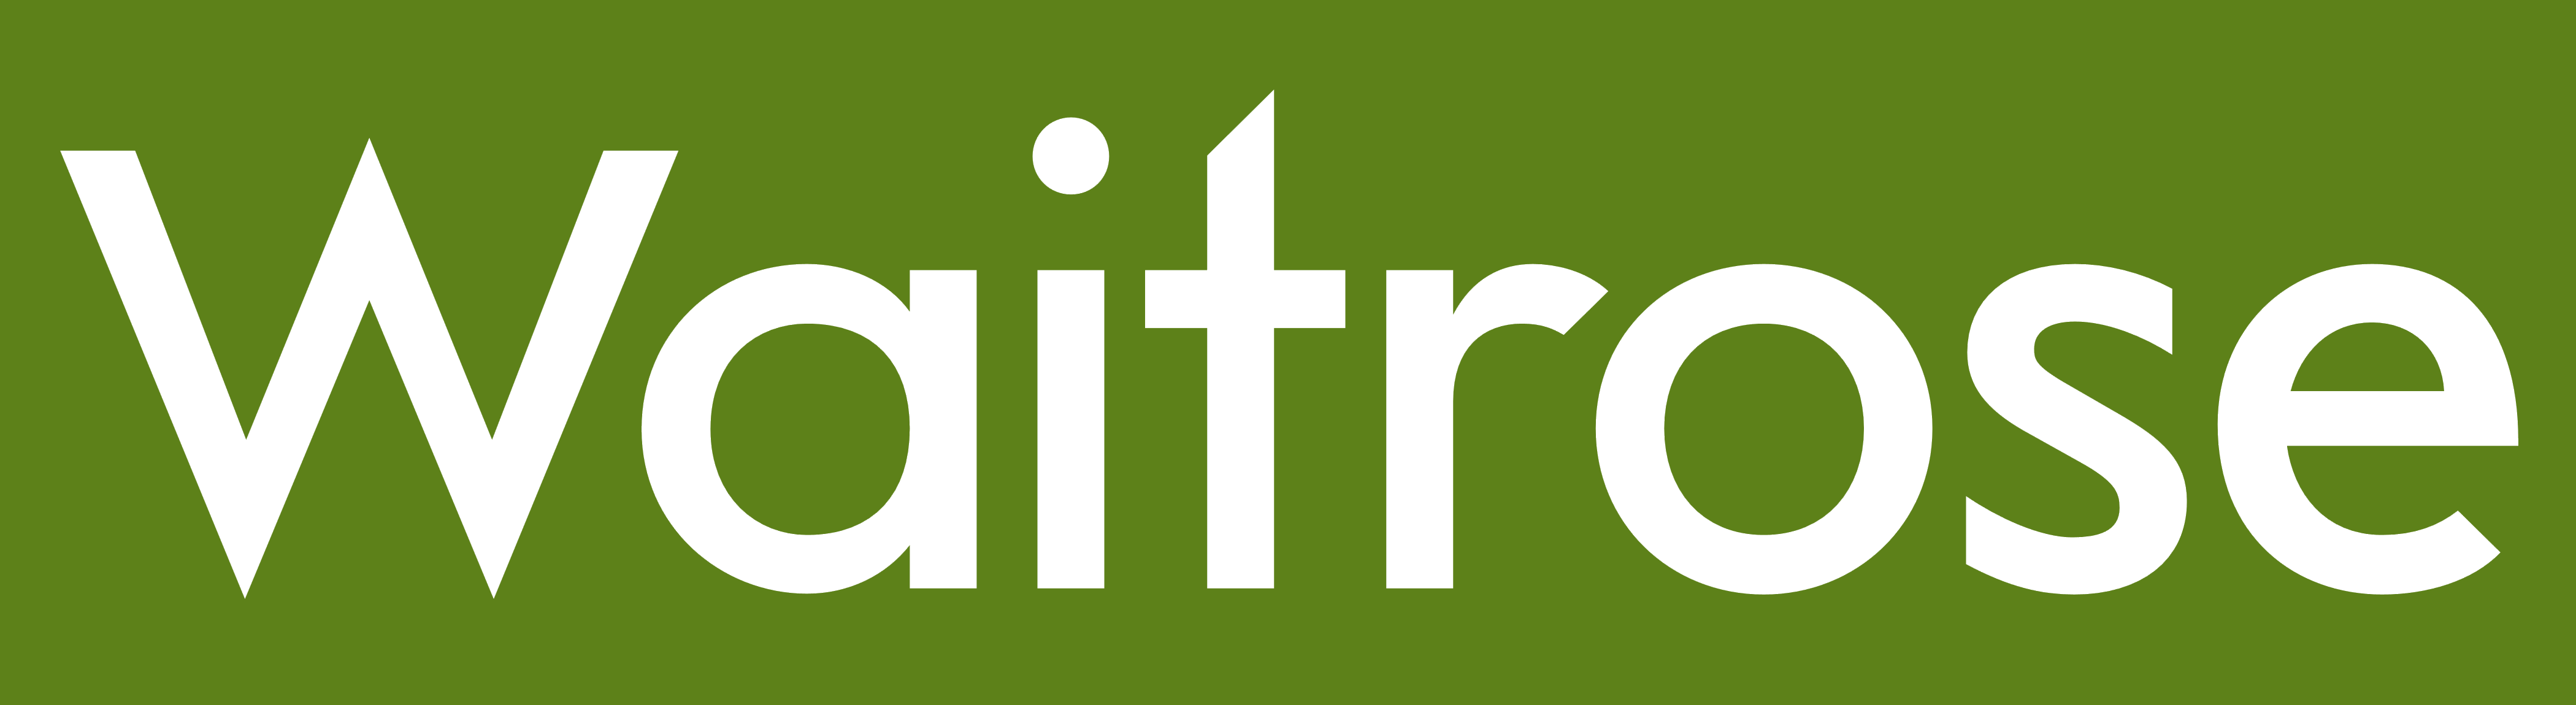 Waitrose_logo_white-green